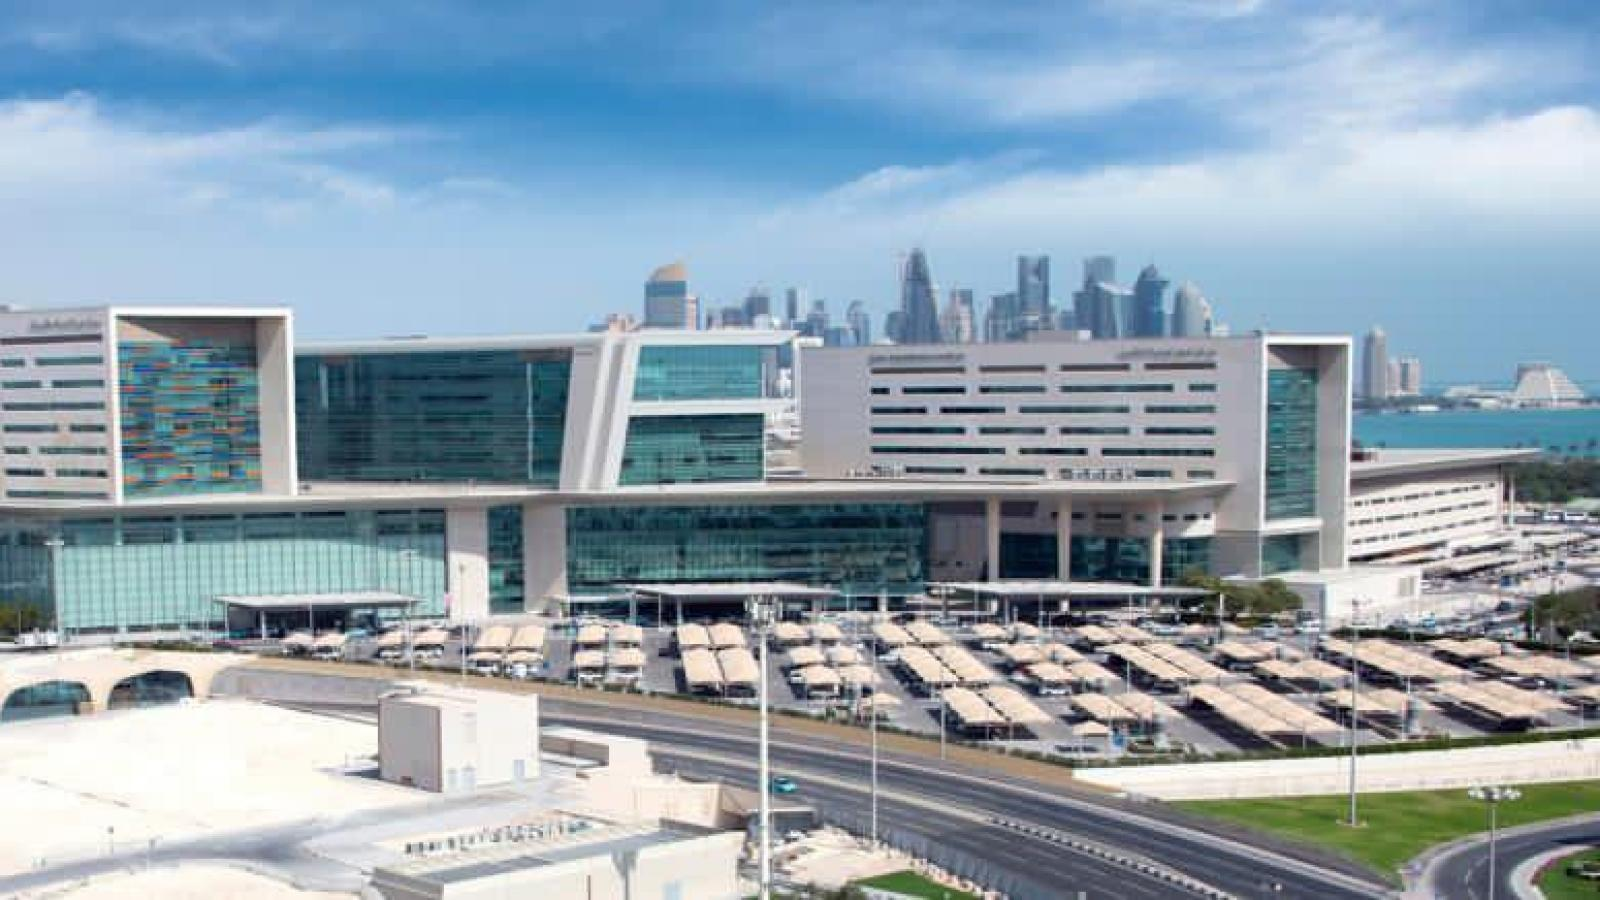 List of contact numbers of COVID-19 hospitals in Qatar